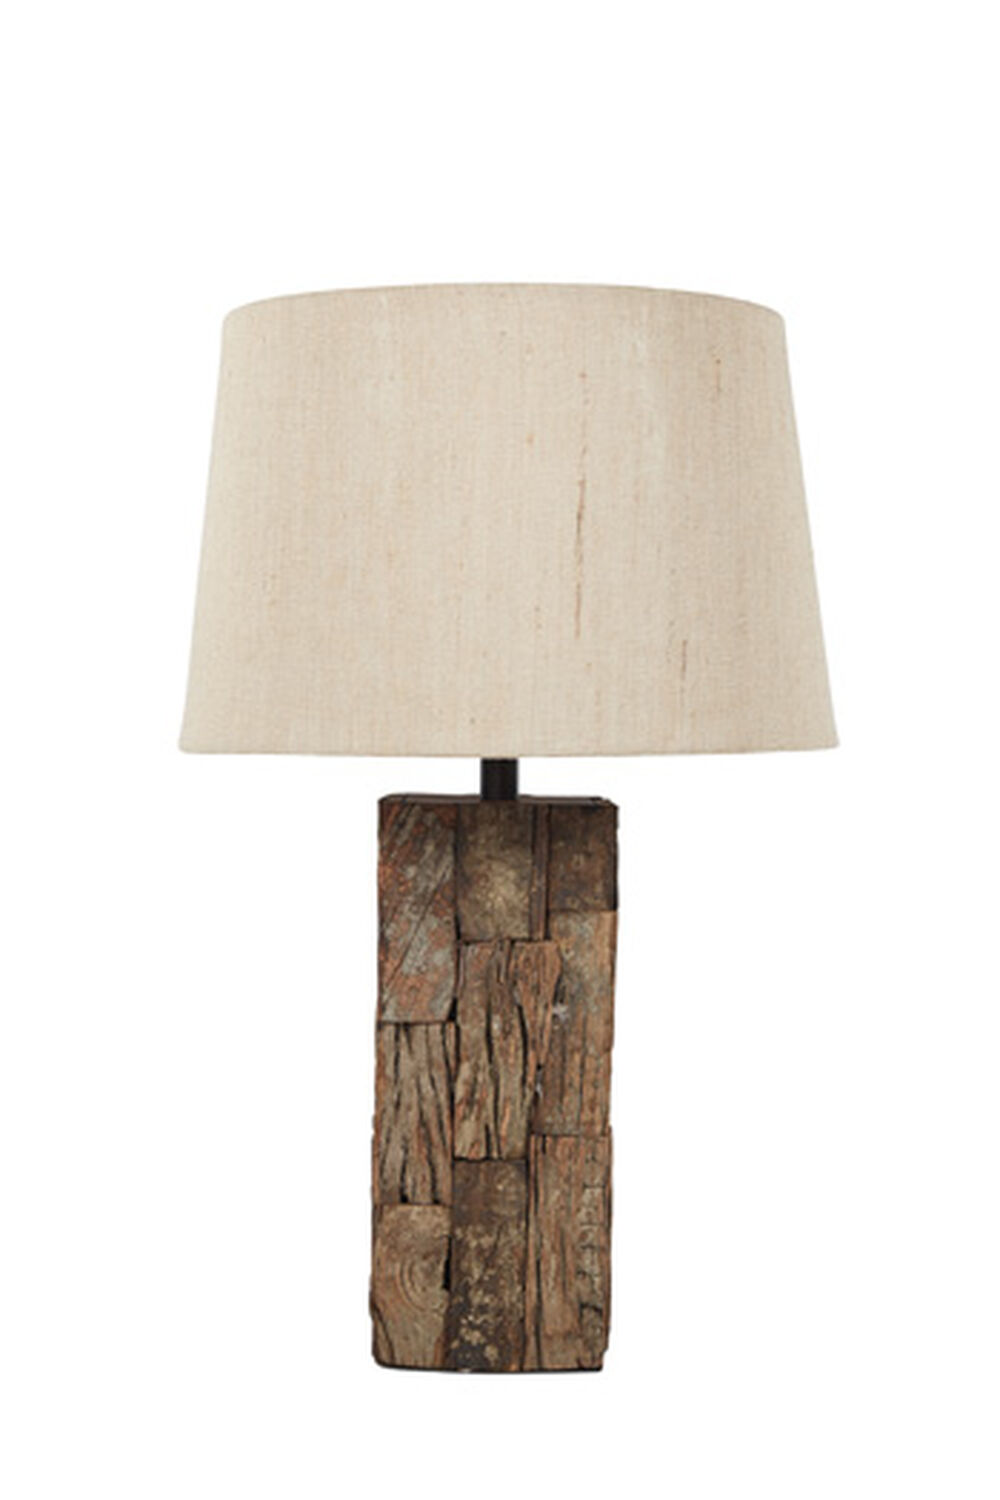 distressed table lamps wood based table images casual distressed table lamp in brown mathis brothers furniture